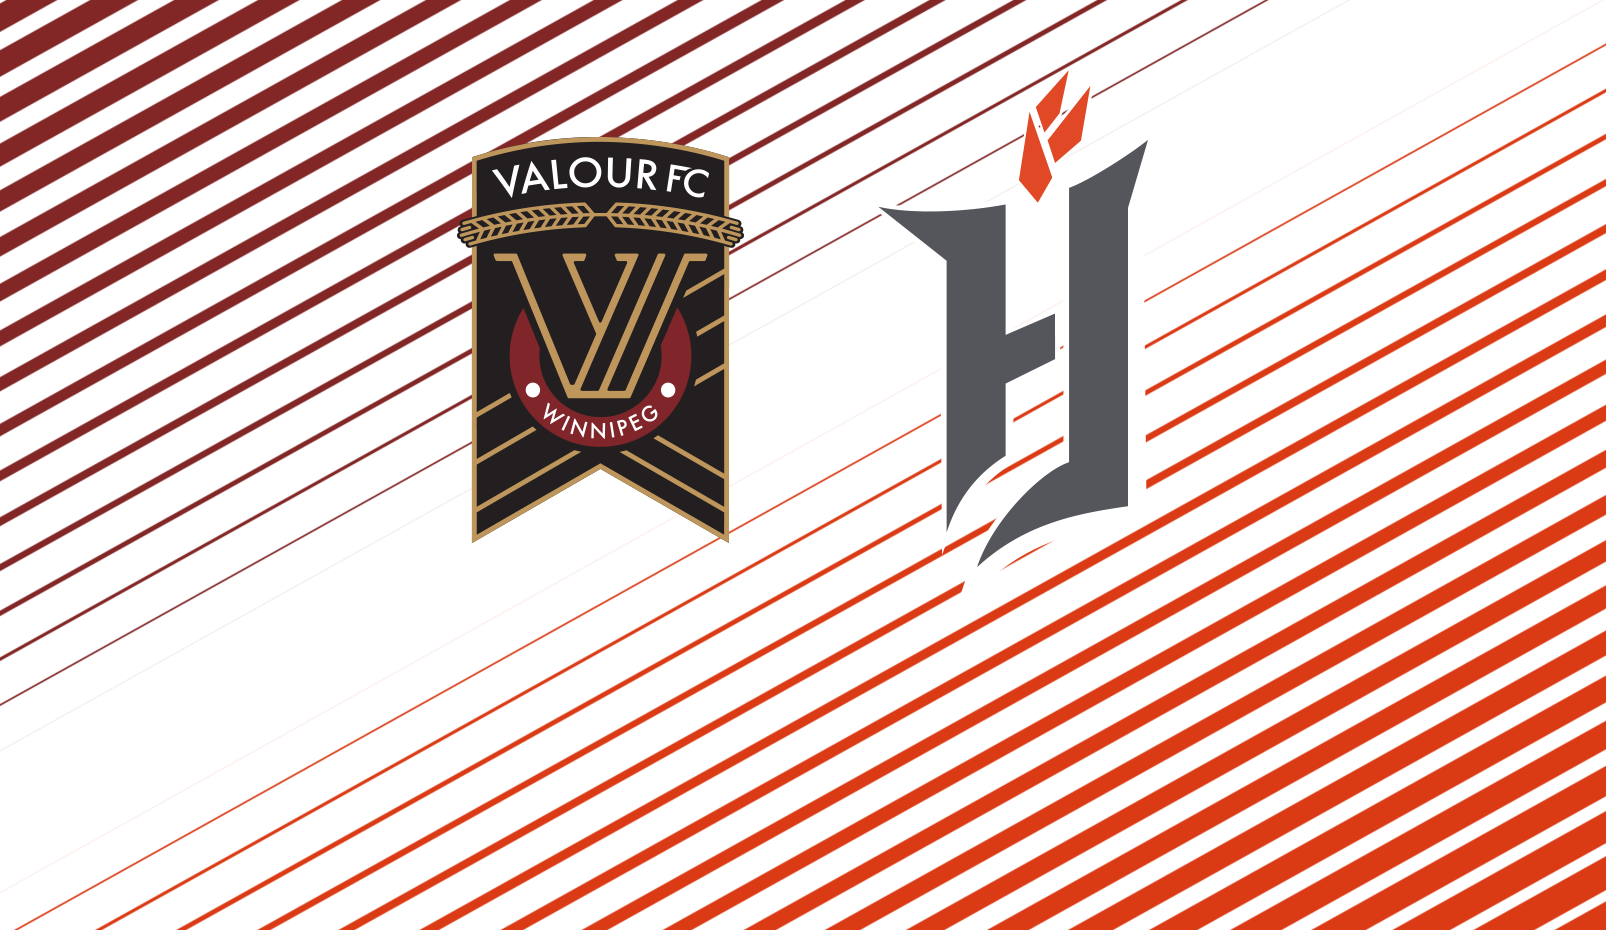 PREVIEW: Valour FC vs. Forge FC - Match #72